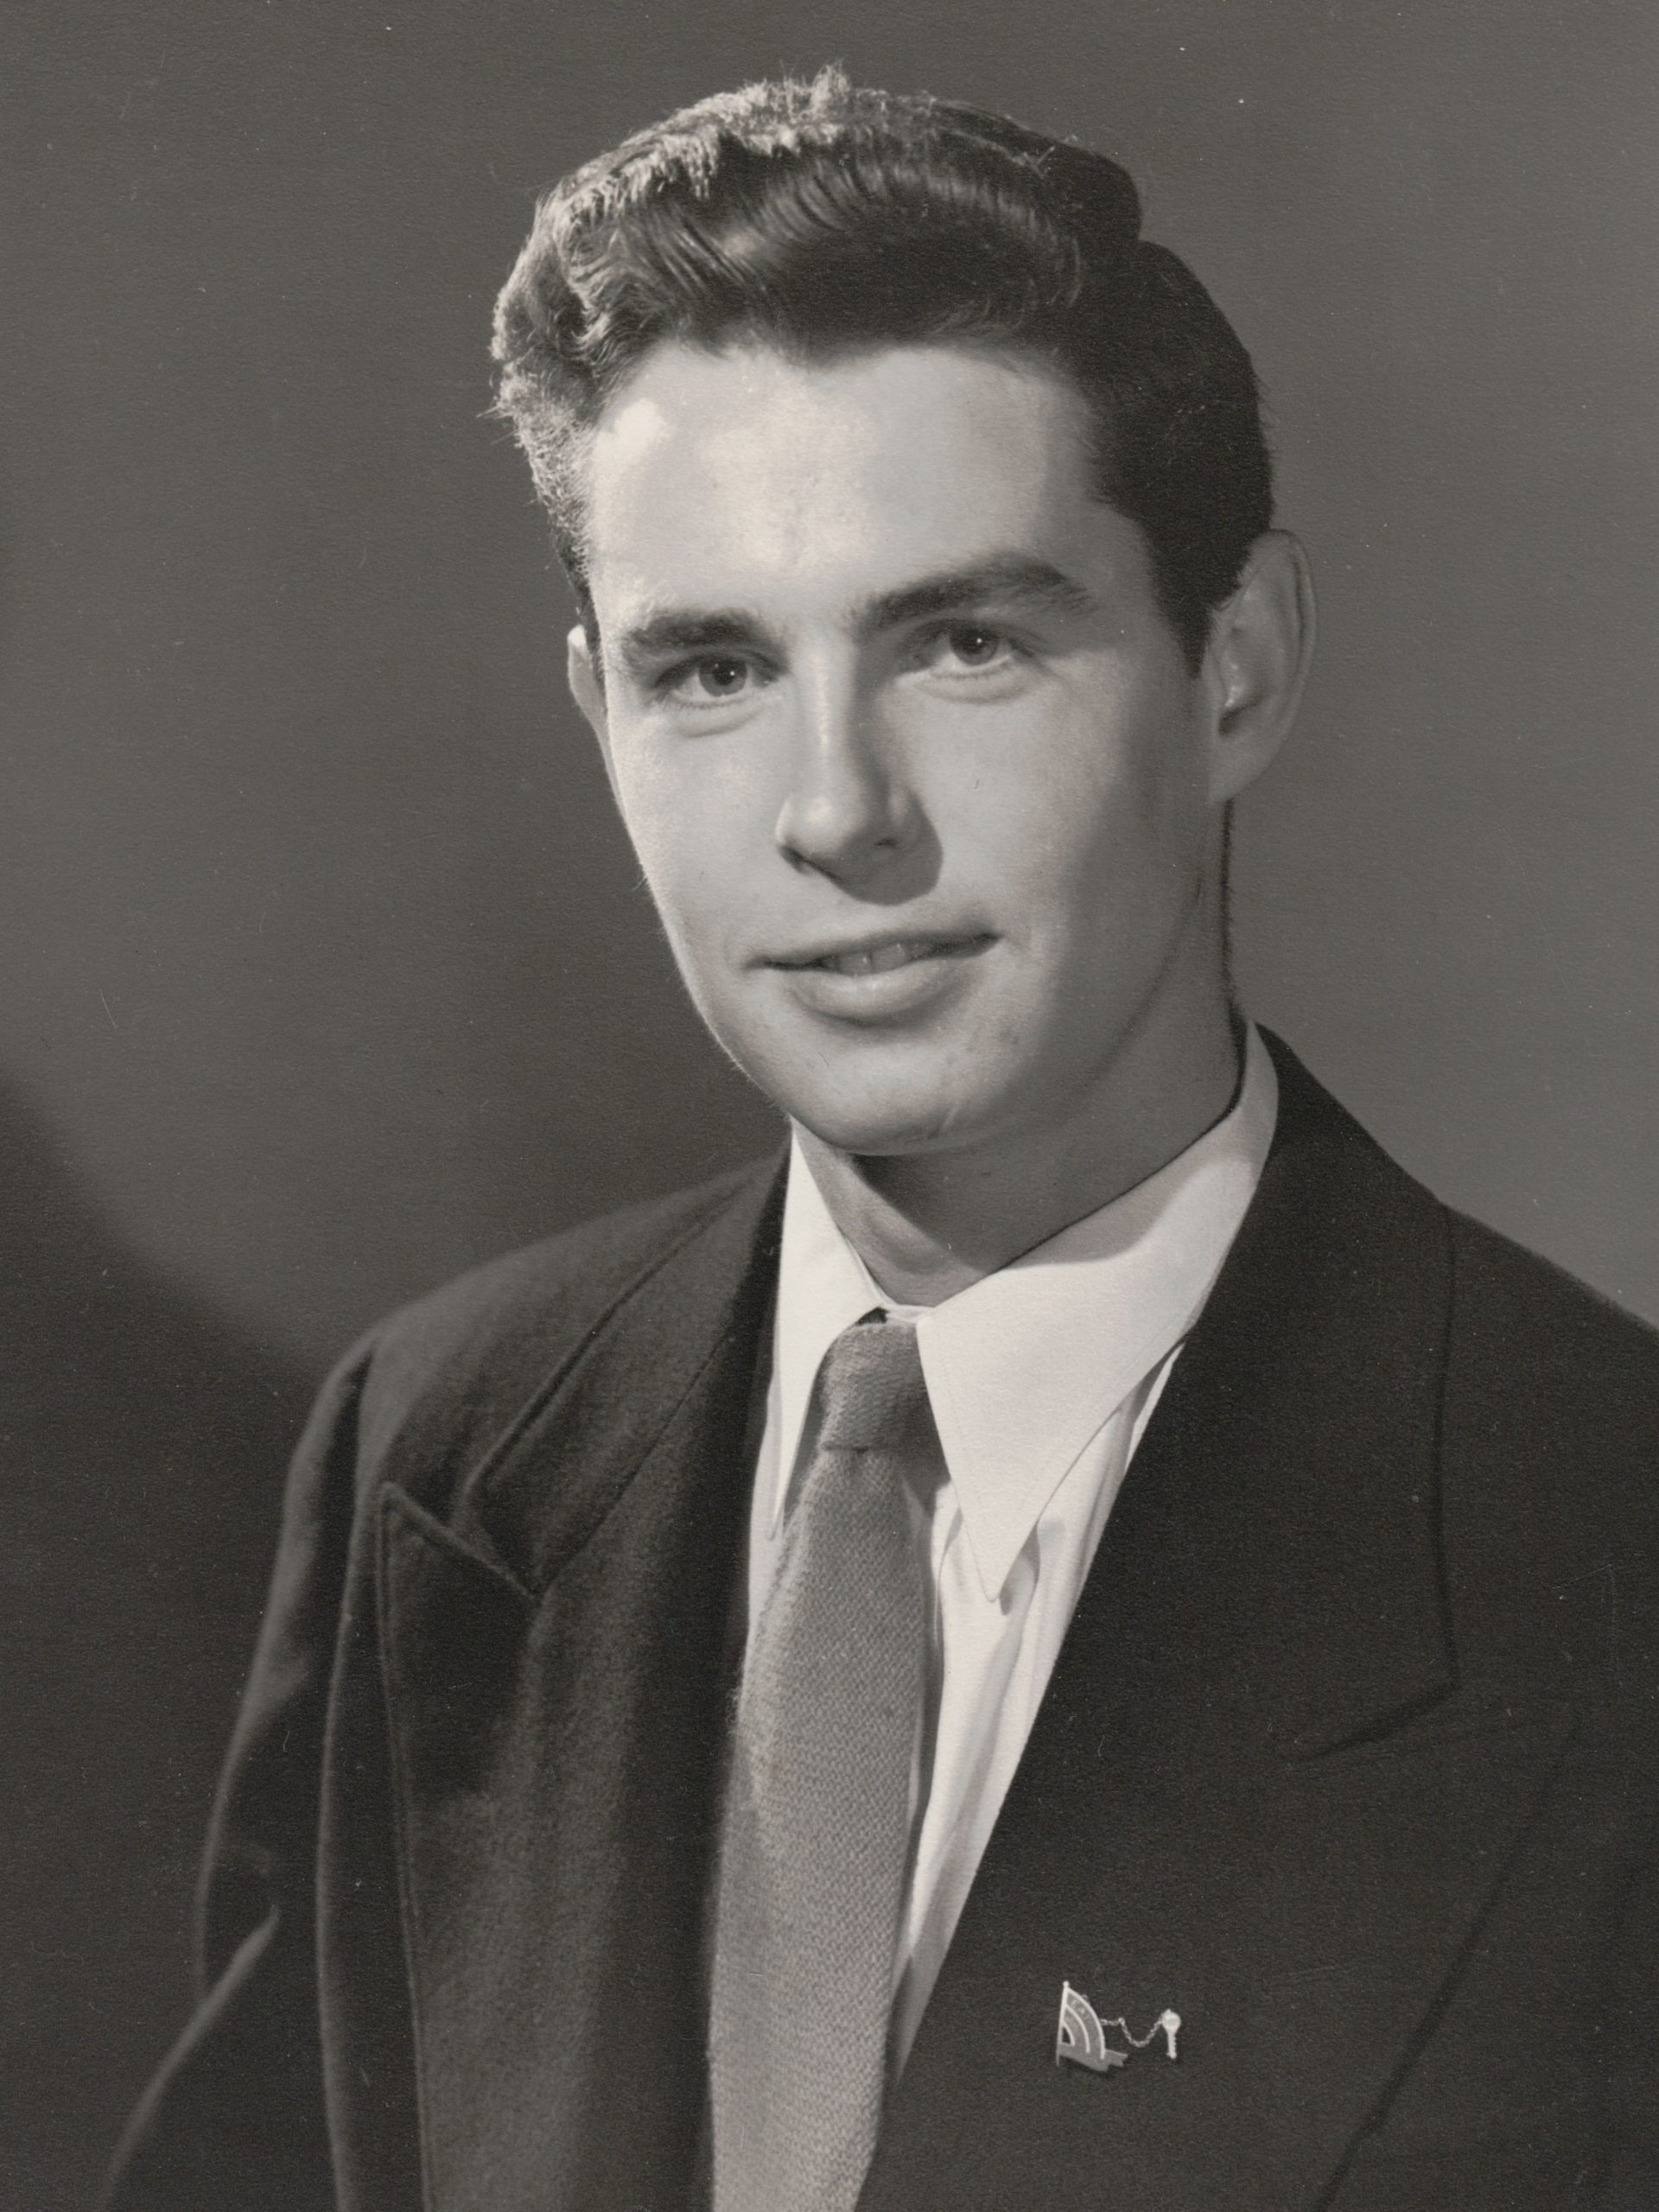 Portrait of Harley Warner as a young man